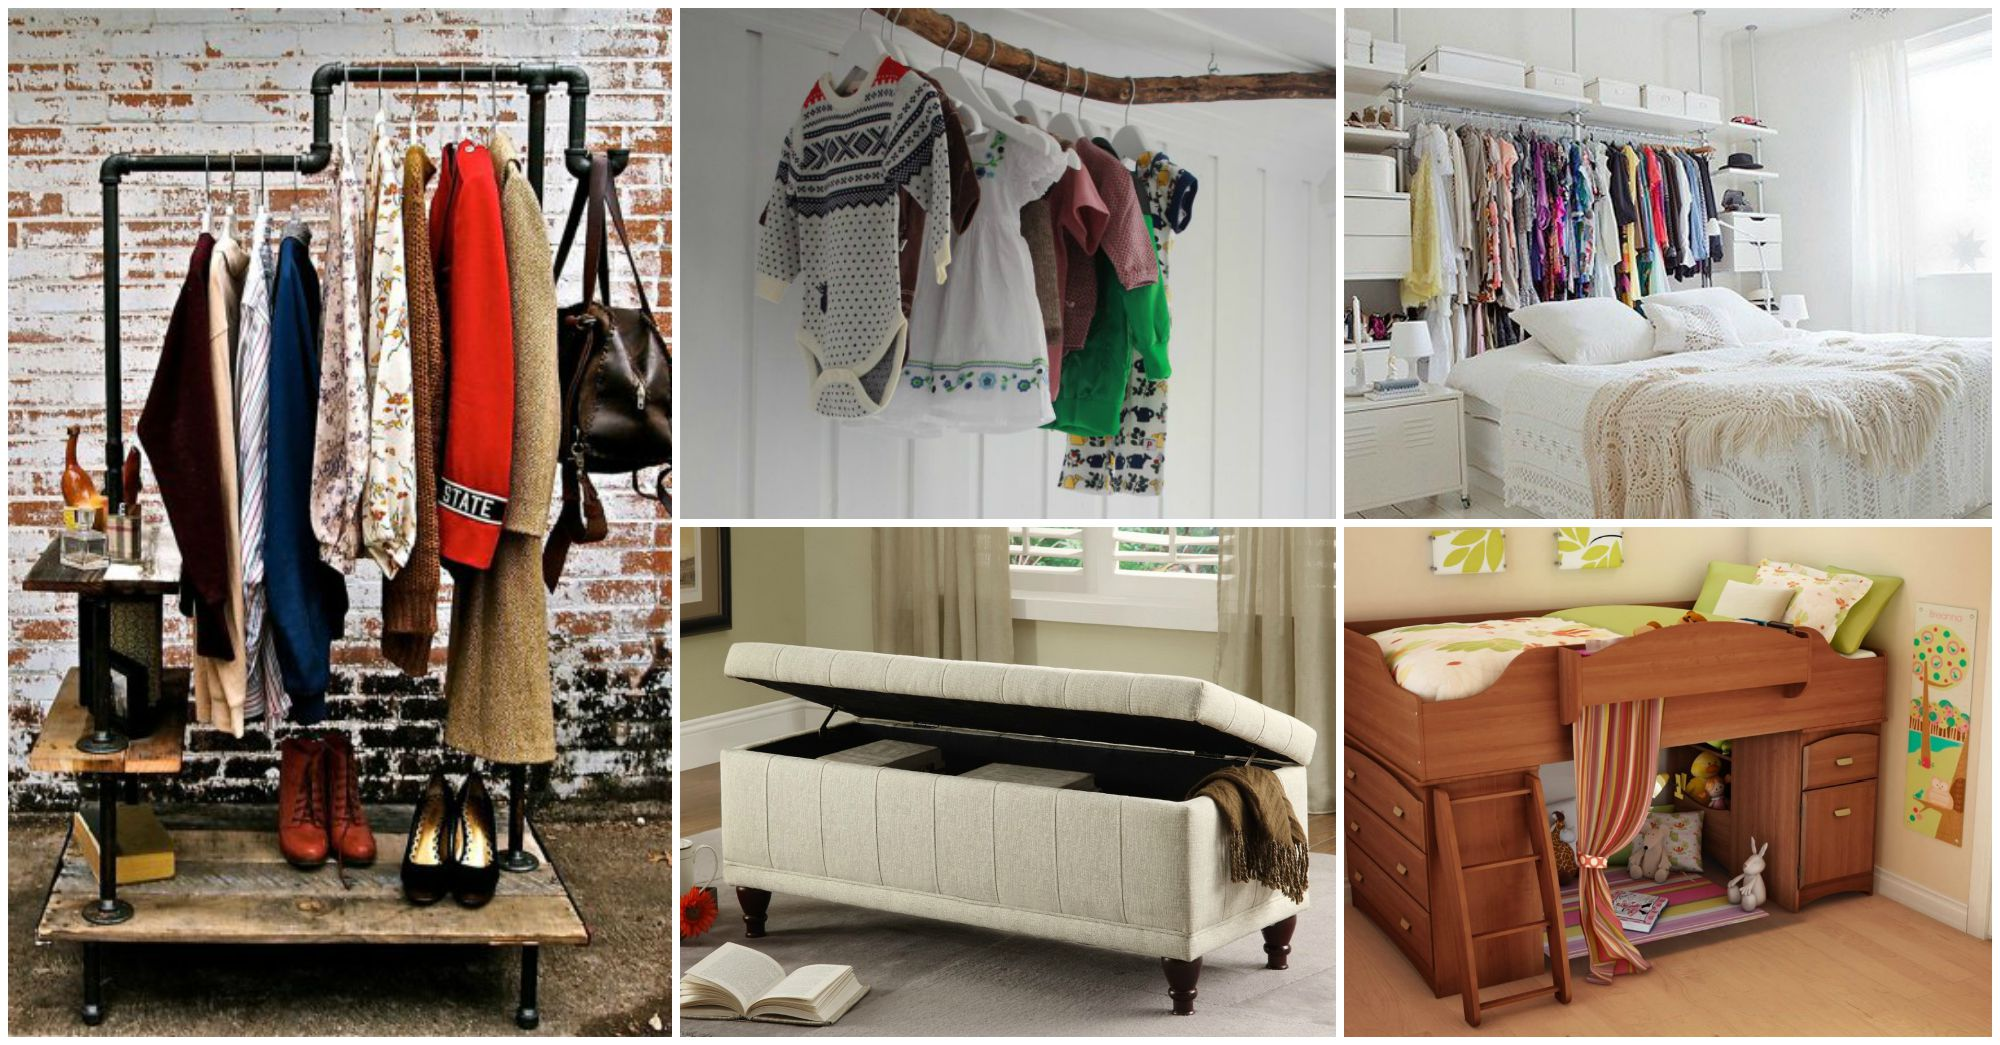 Top 10 Clothing Storage Solutions